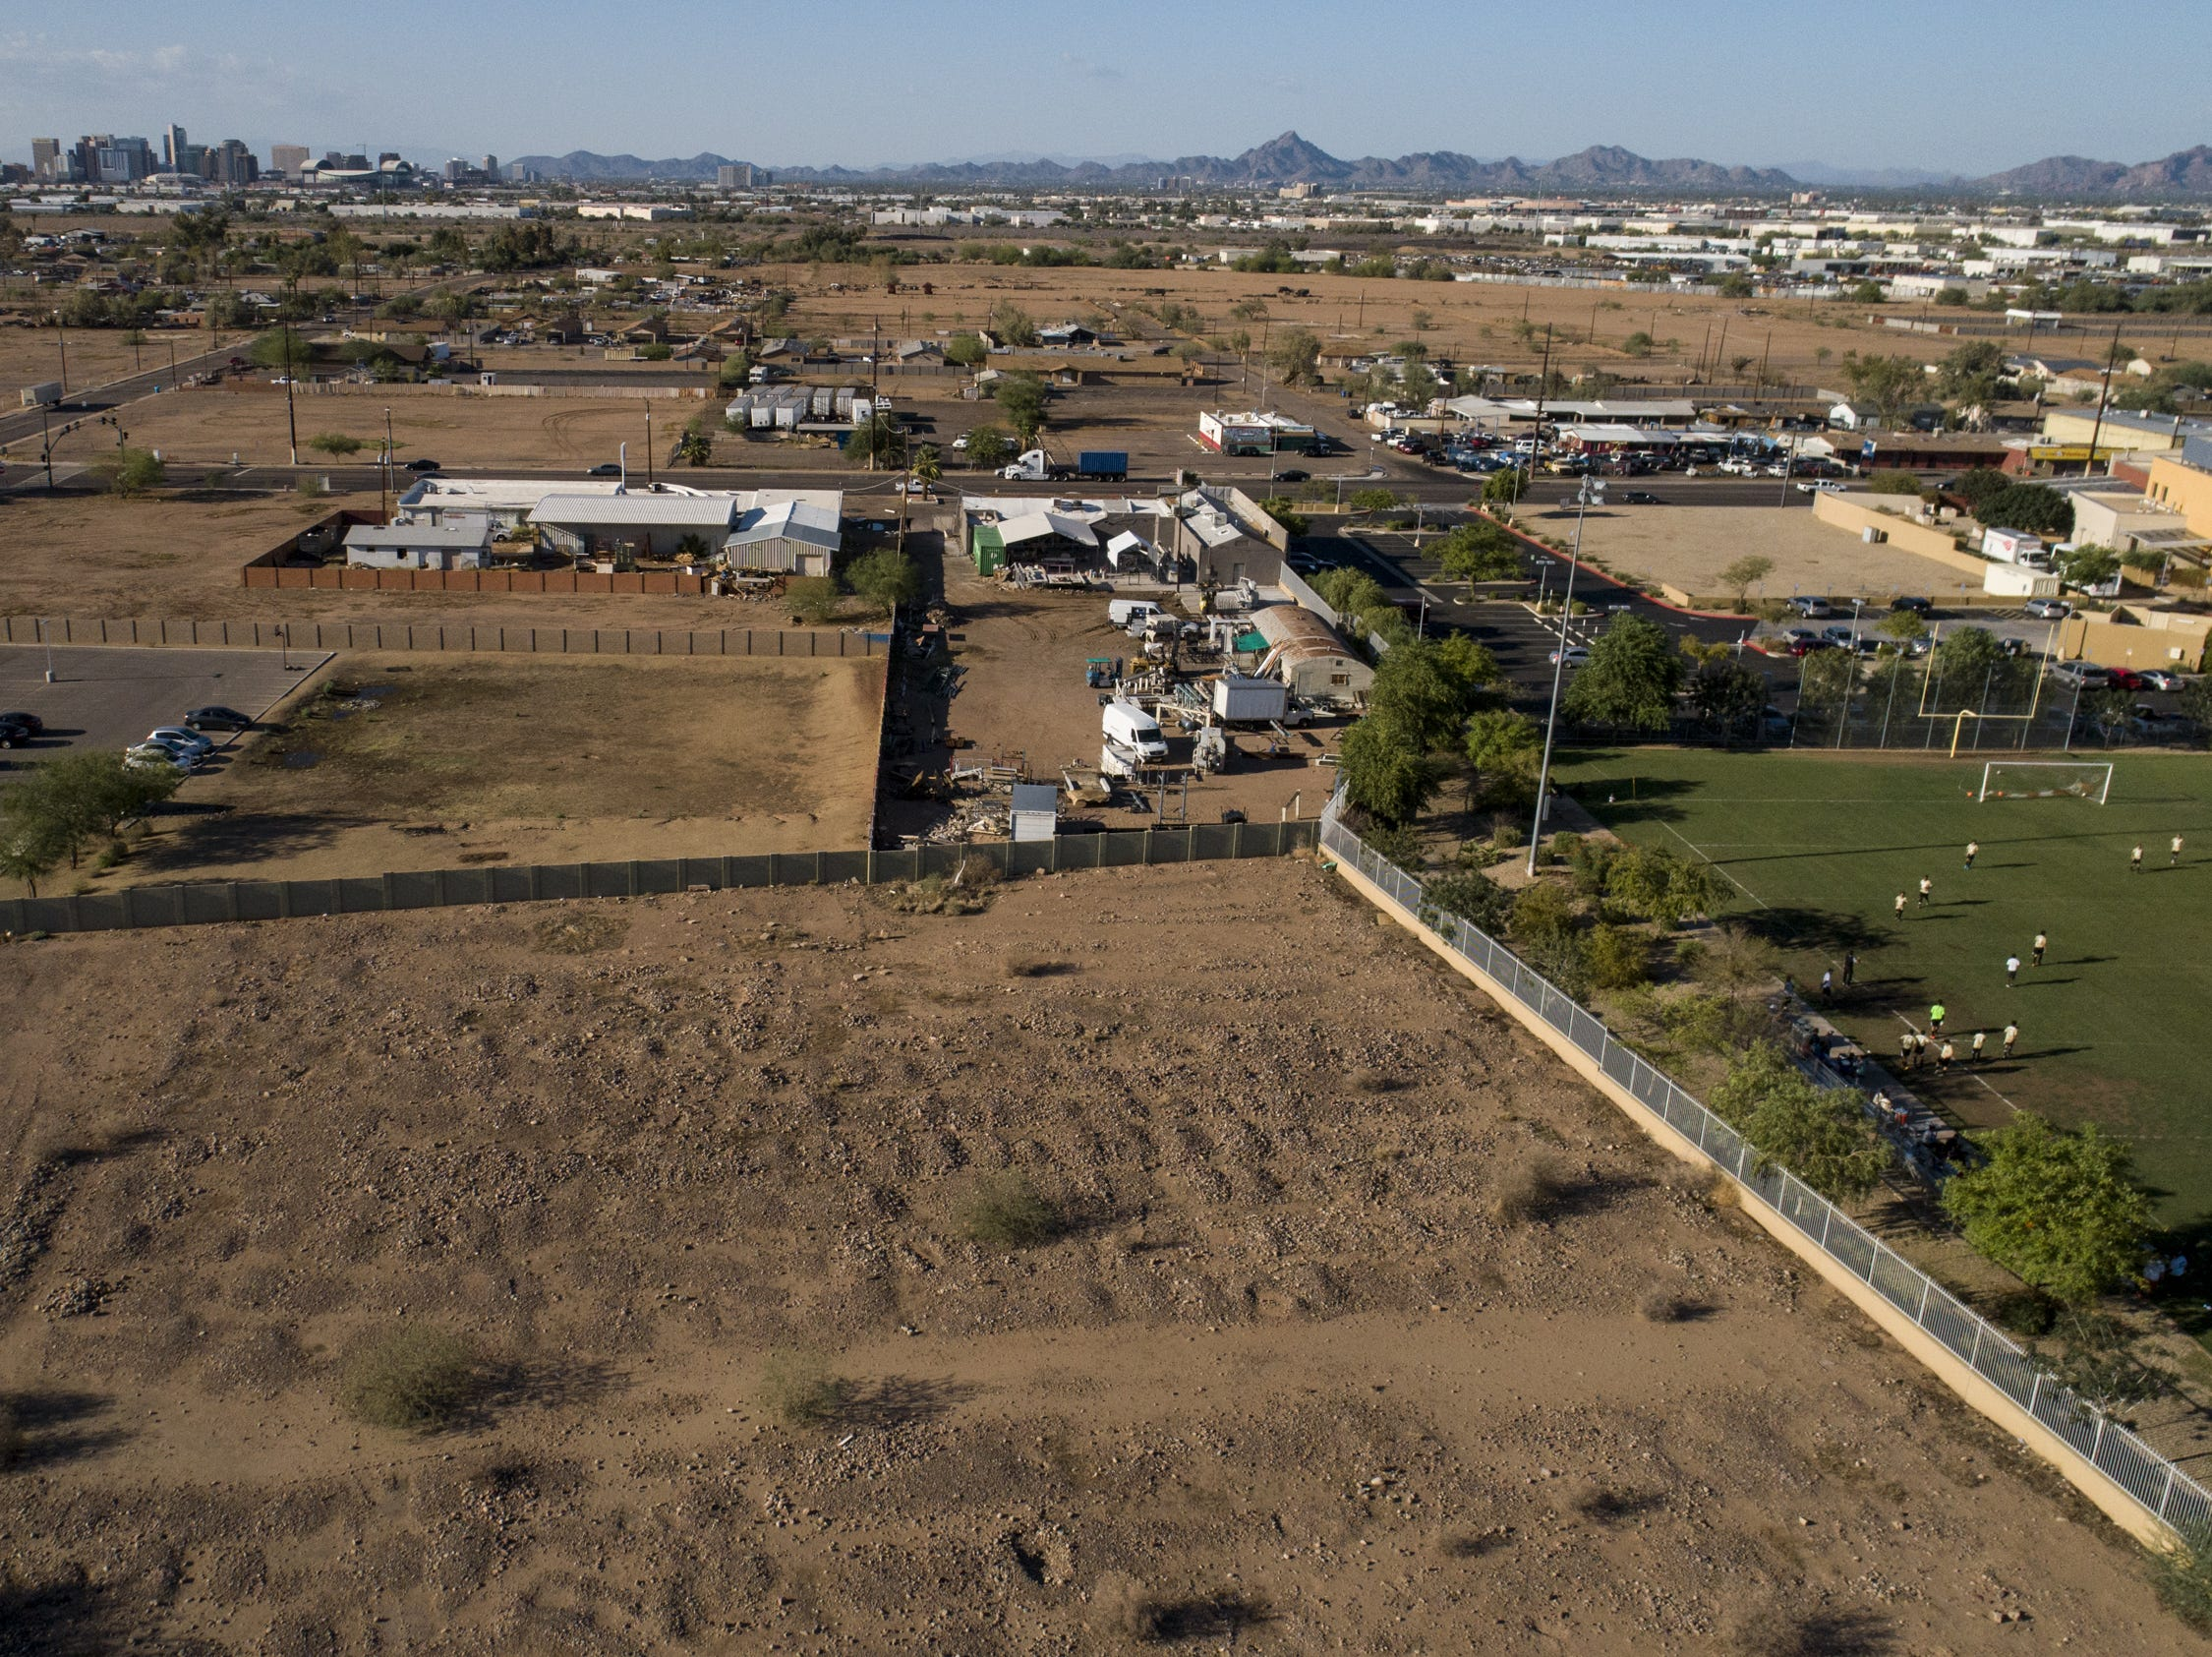 The Sotelo-Heard Cemetery in Phoenix as seen from above.